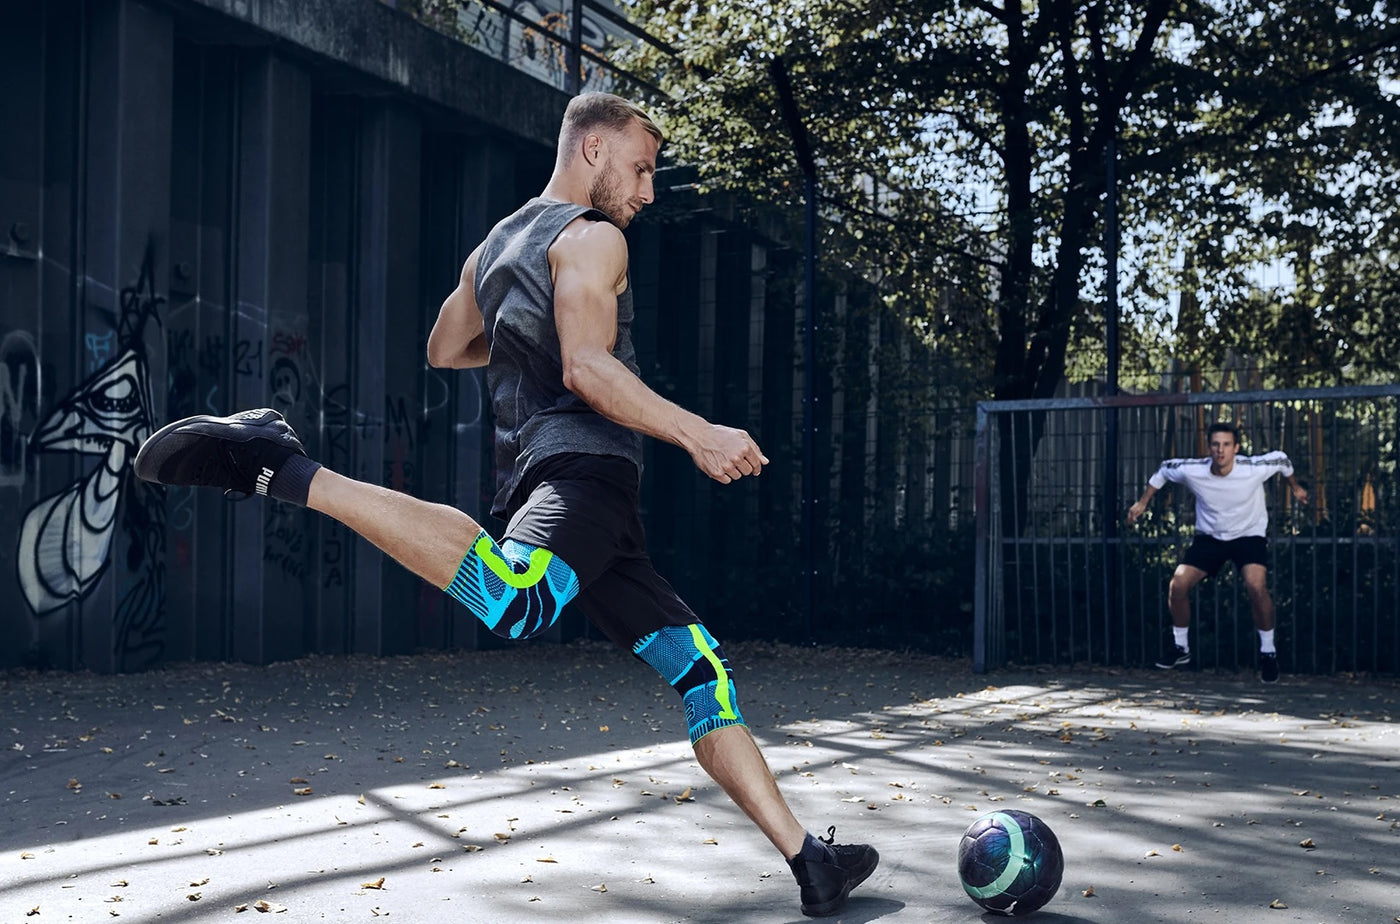 Men playing futsal wearing knee braces and is one of the sports braces and supports made by Bauerfeind.